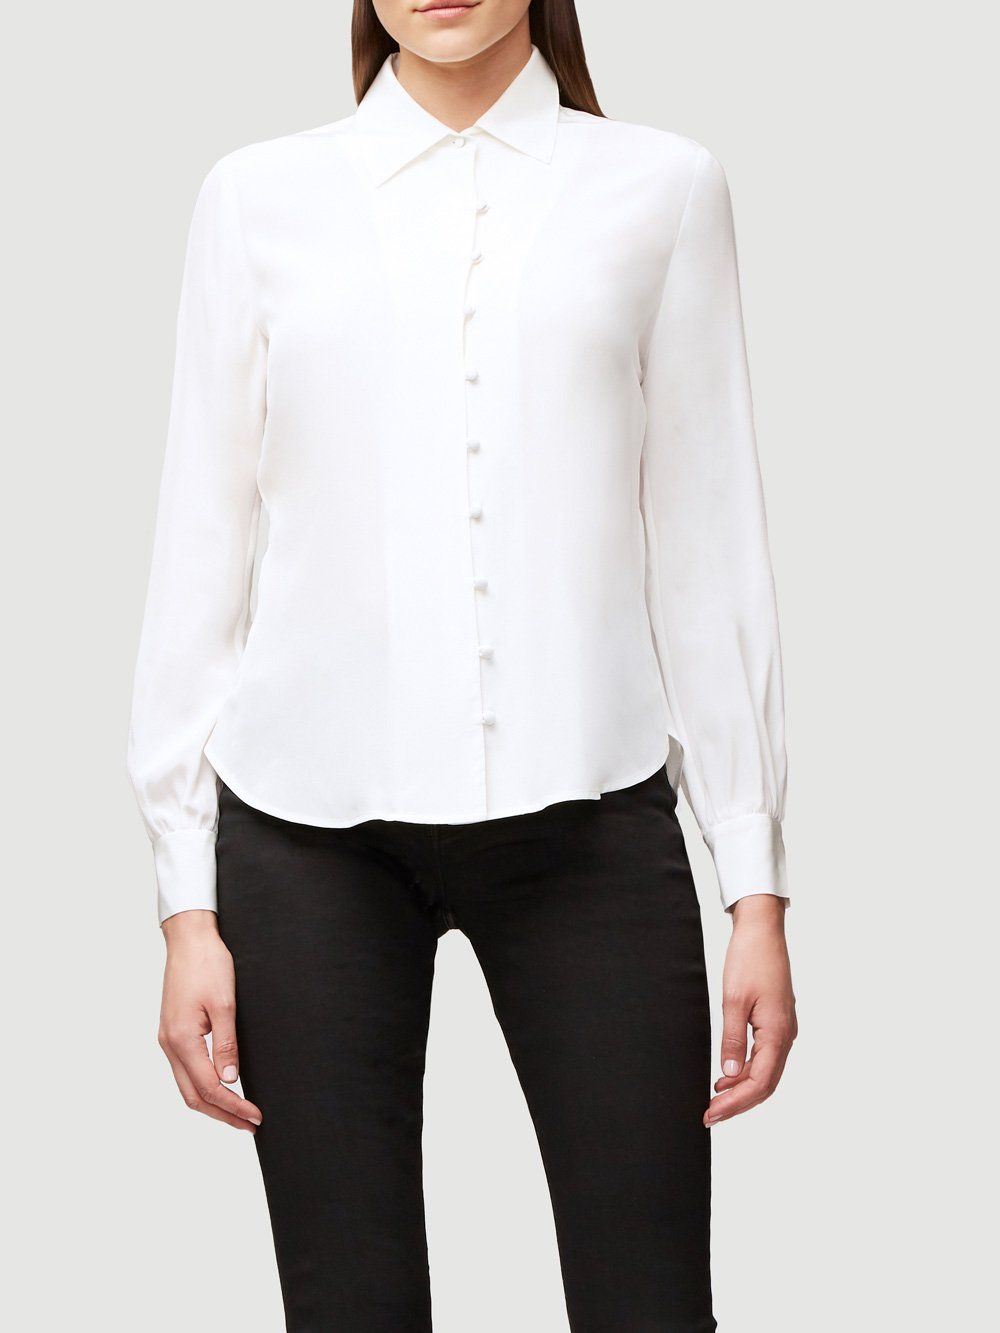 Pussy Bow Blouse - Off White